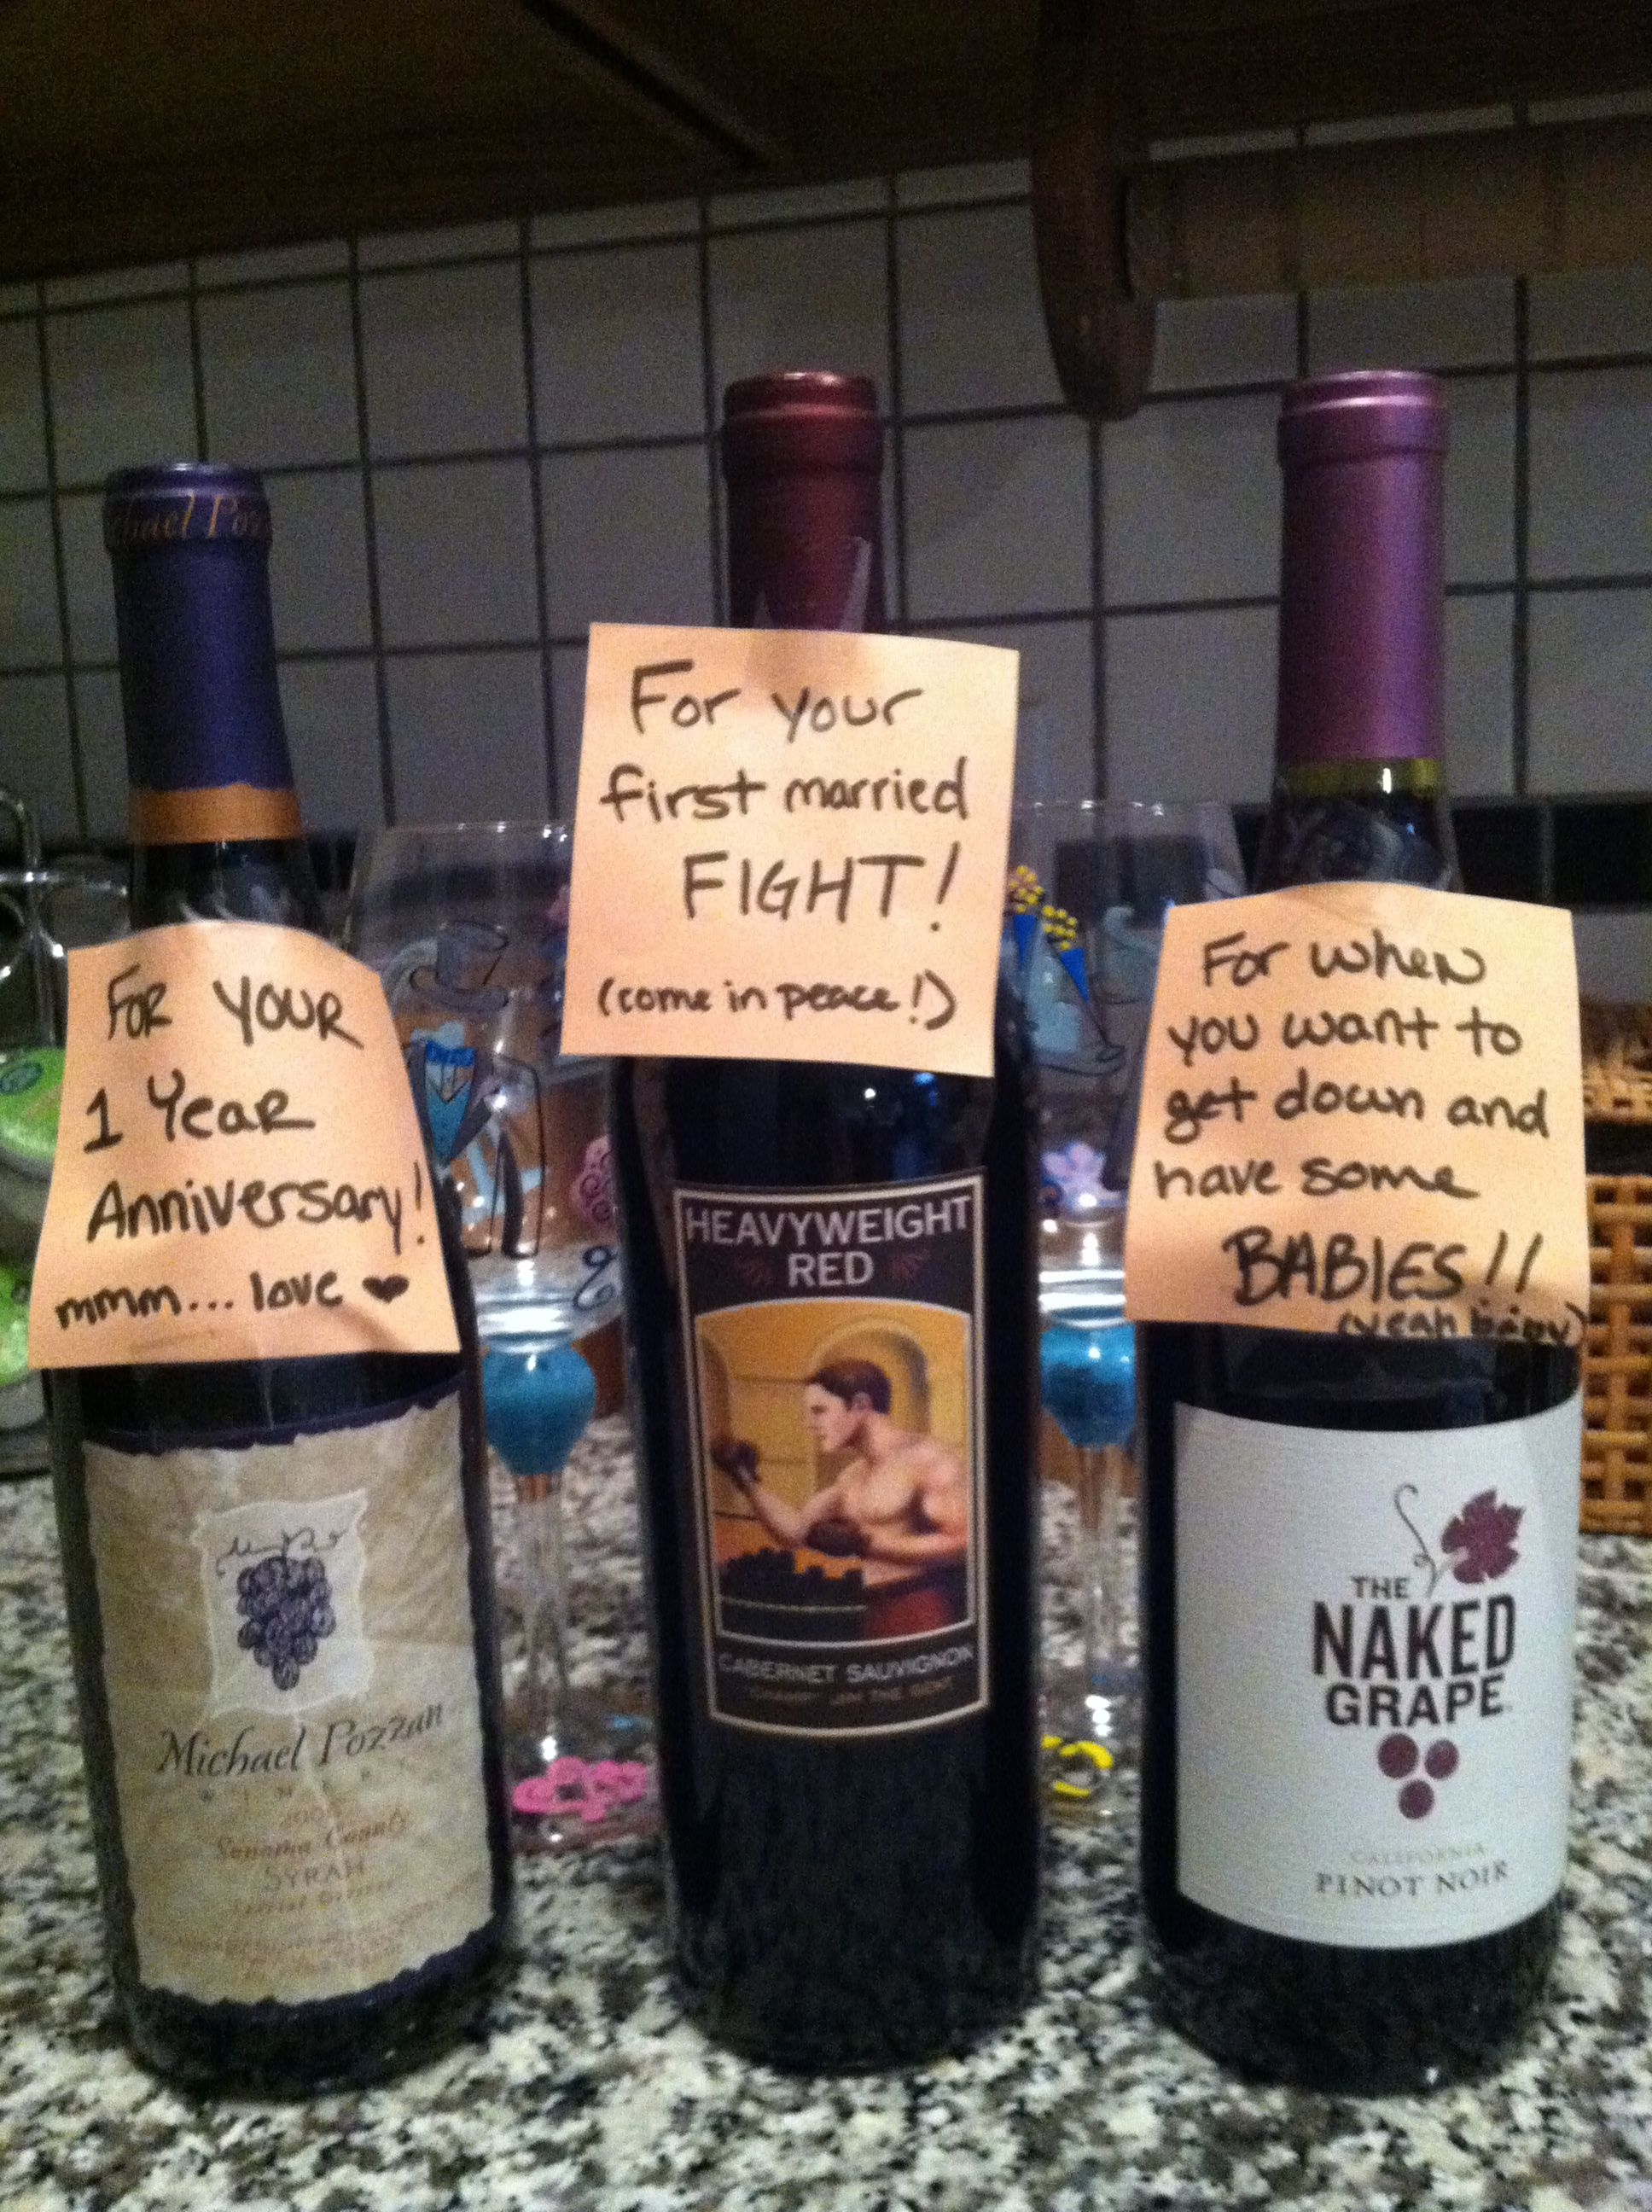 bridal shower gift find wines with appropriate names for each give along with